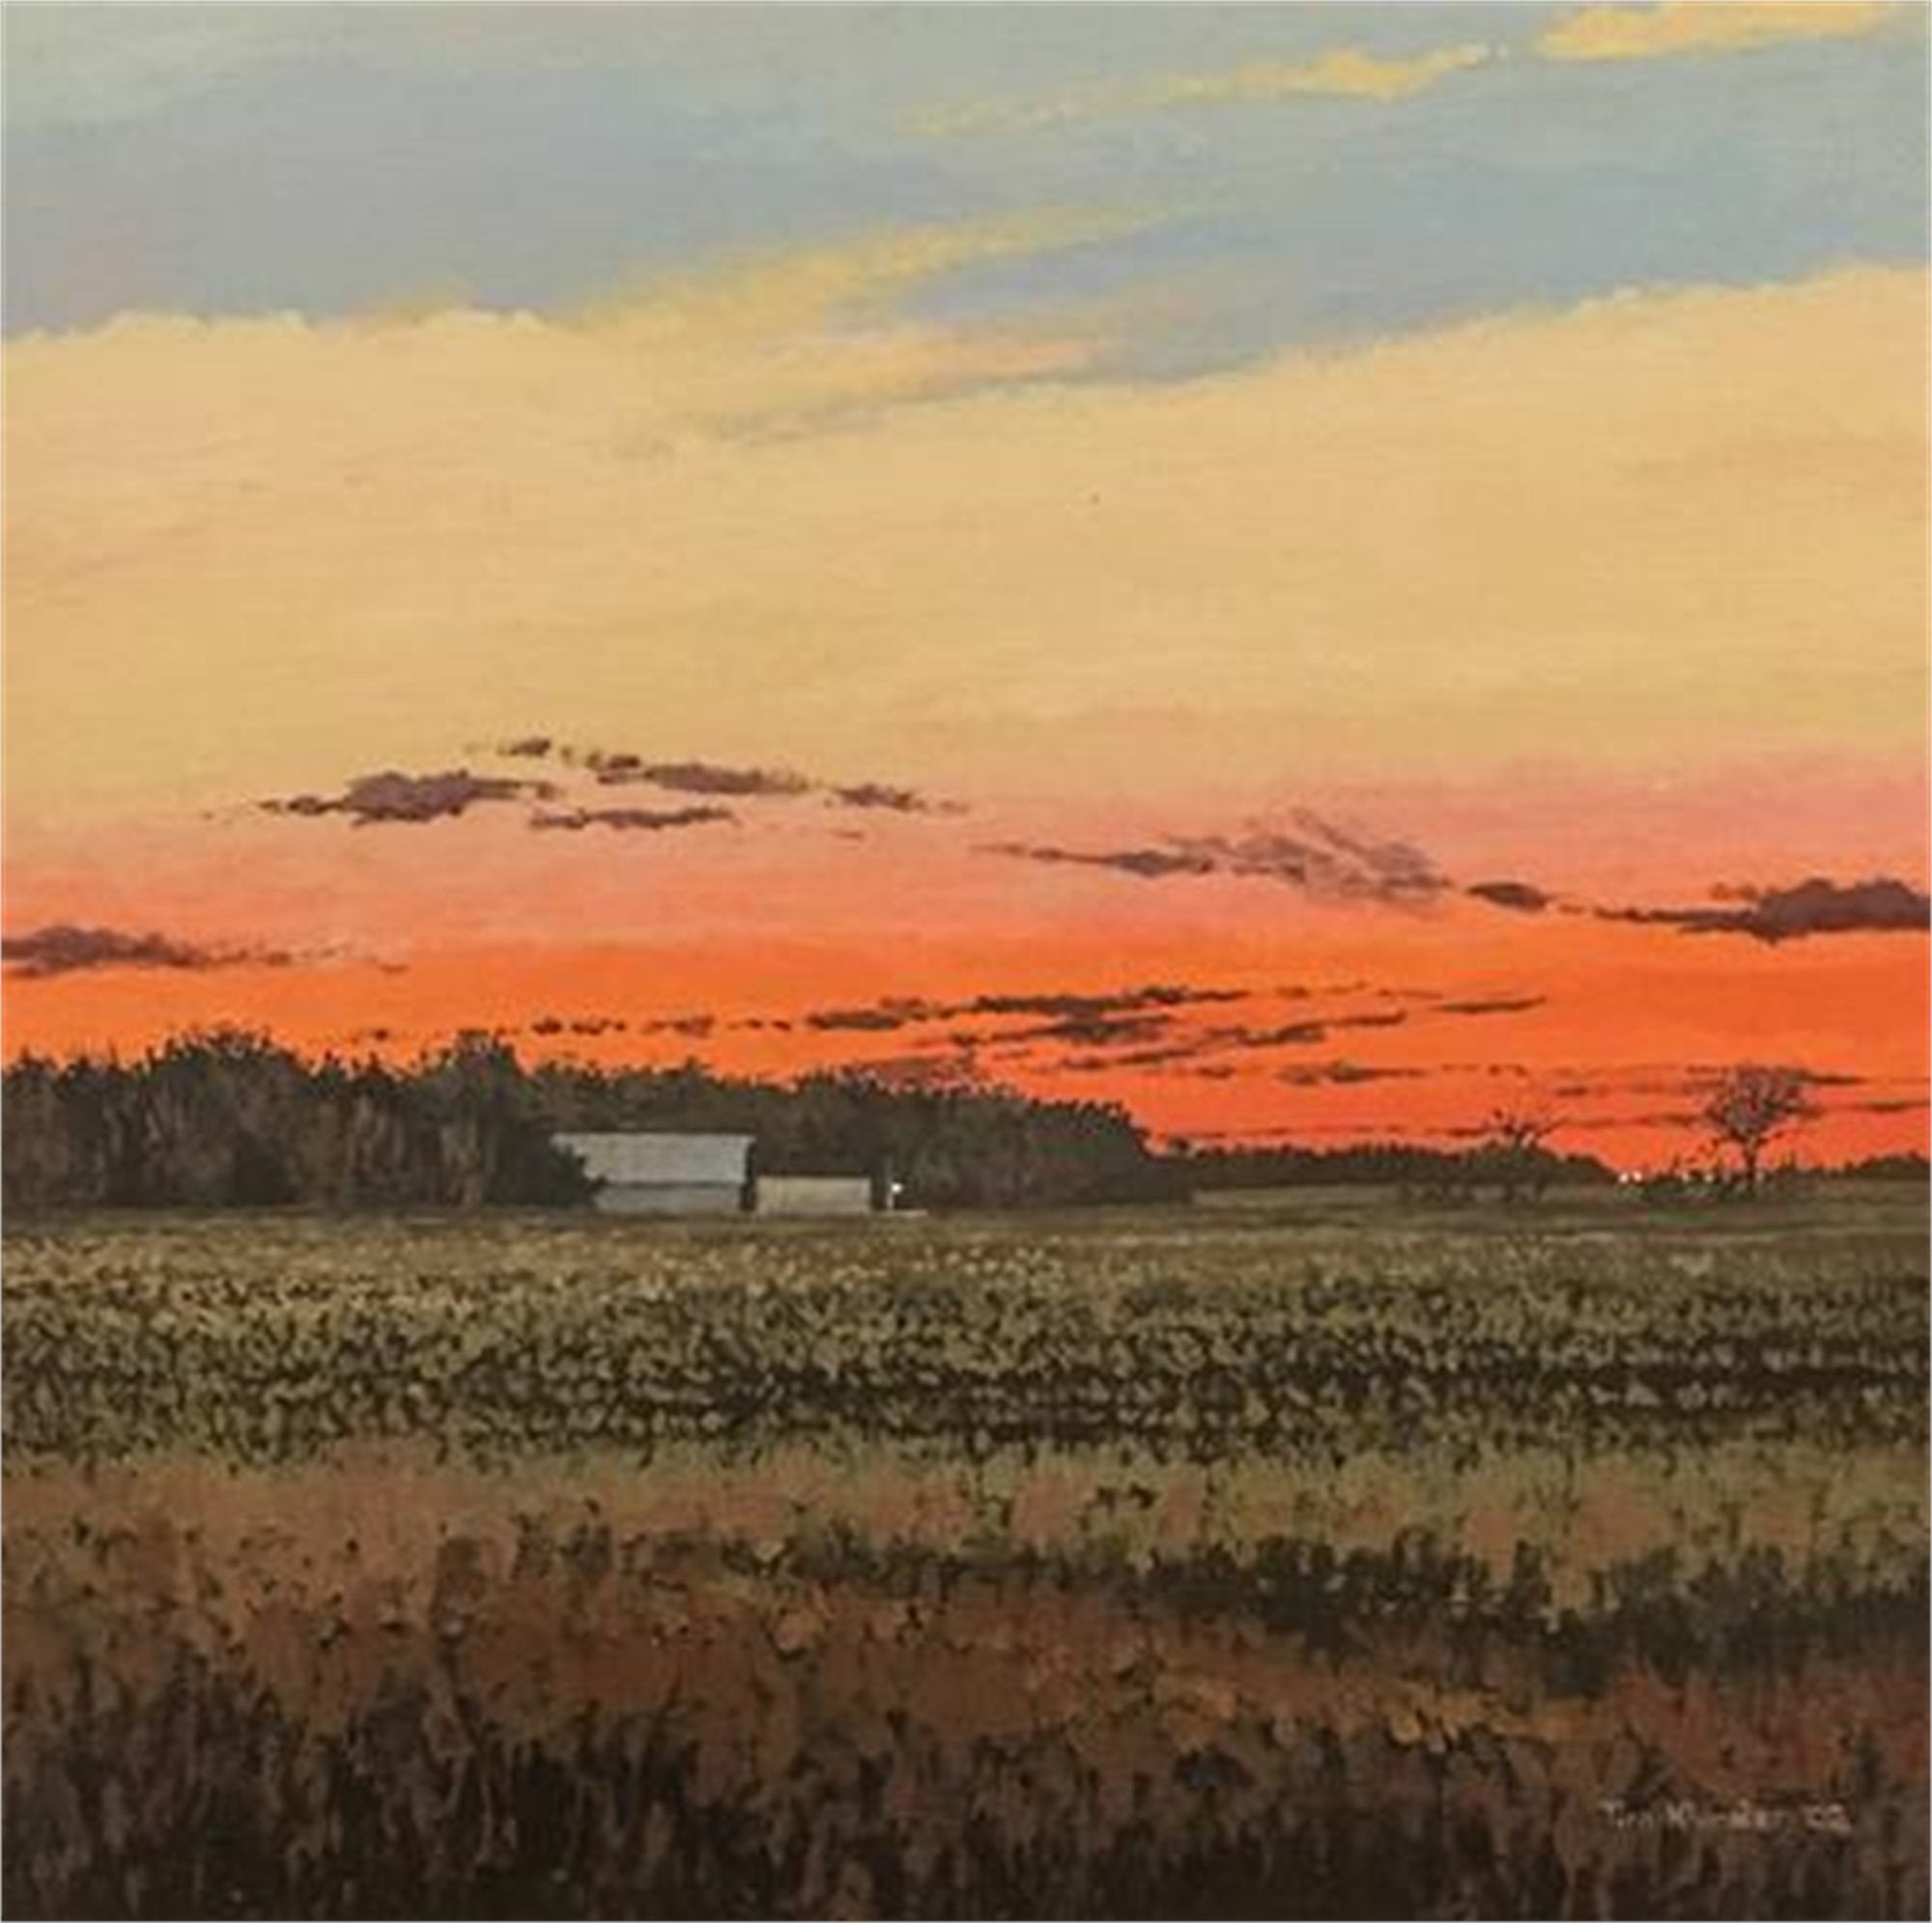 Nebraska Dusk No. 2 by Tim Klunder